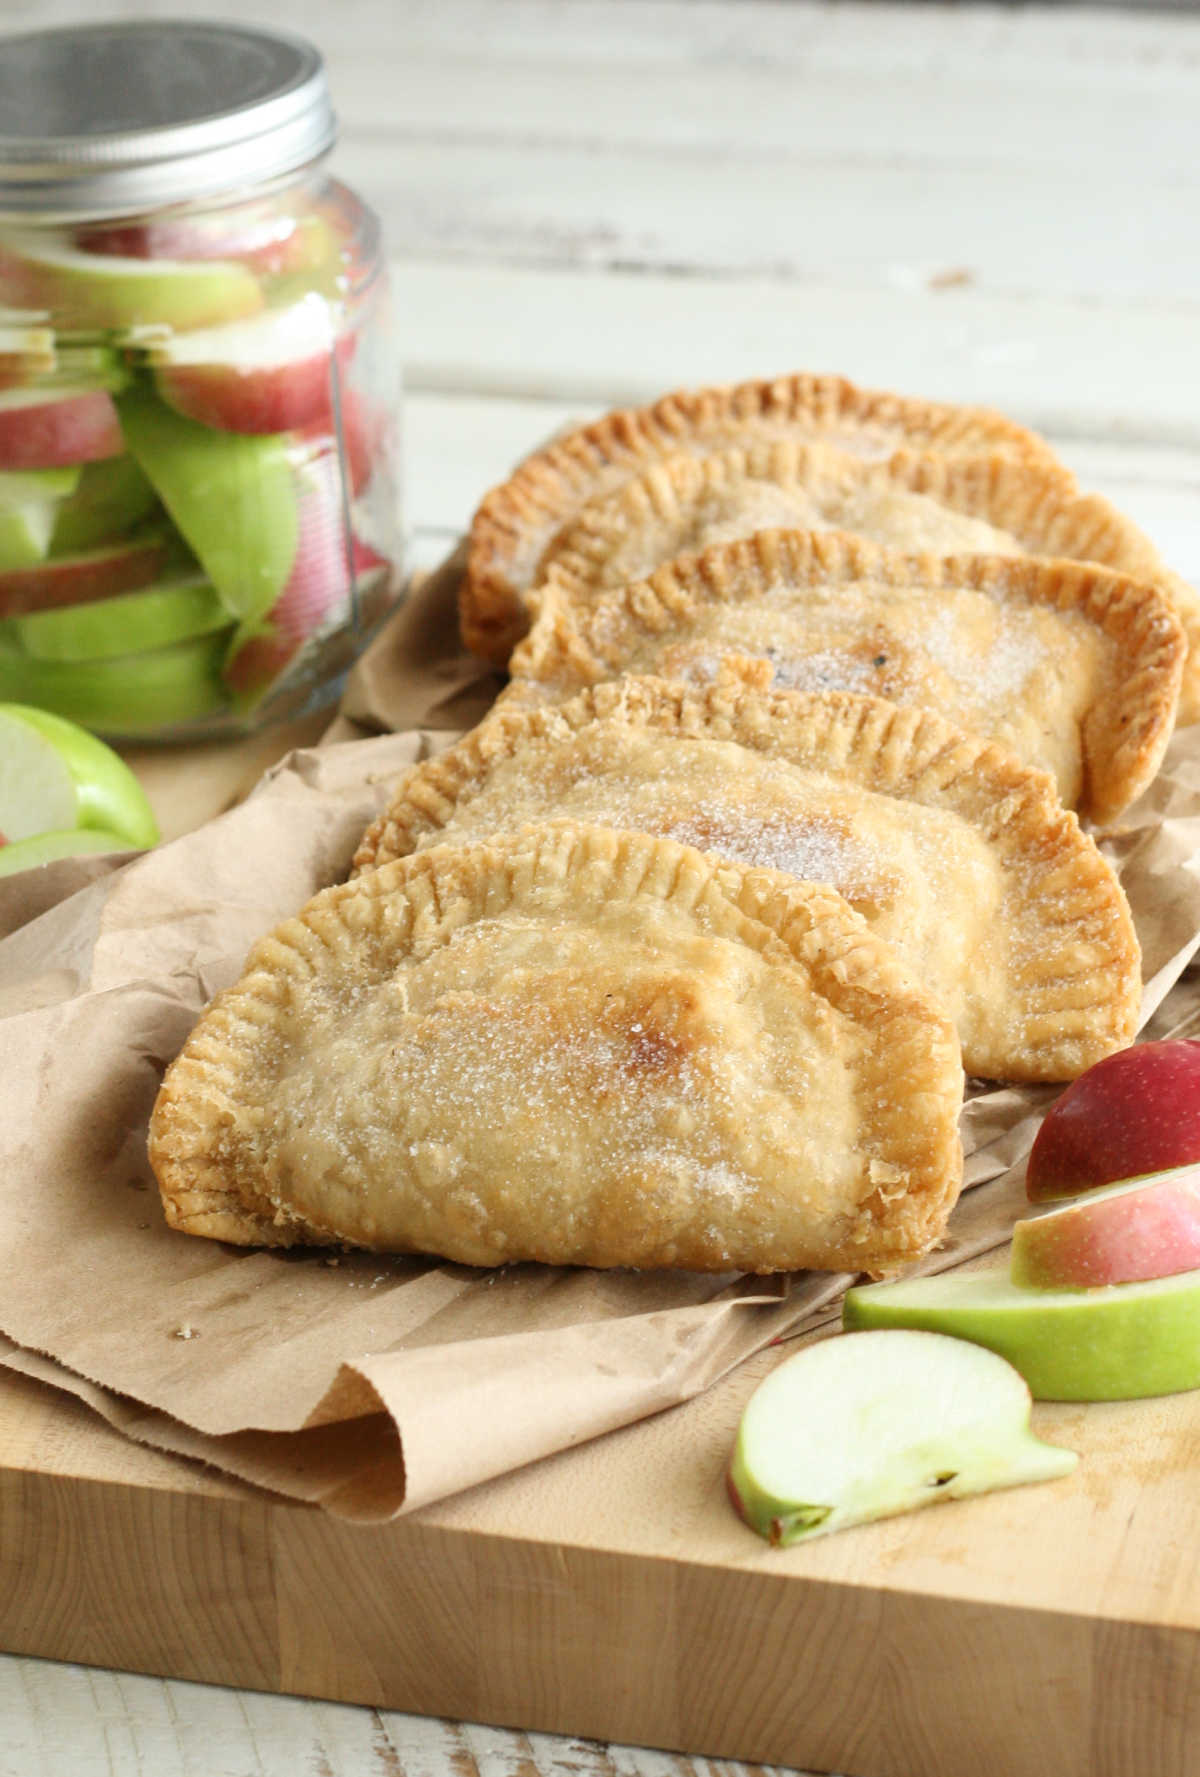 Four apple hand pies on wooden cutting board, slices of apples around them.